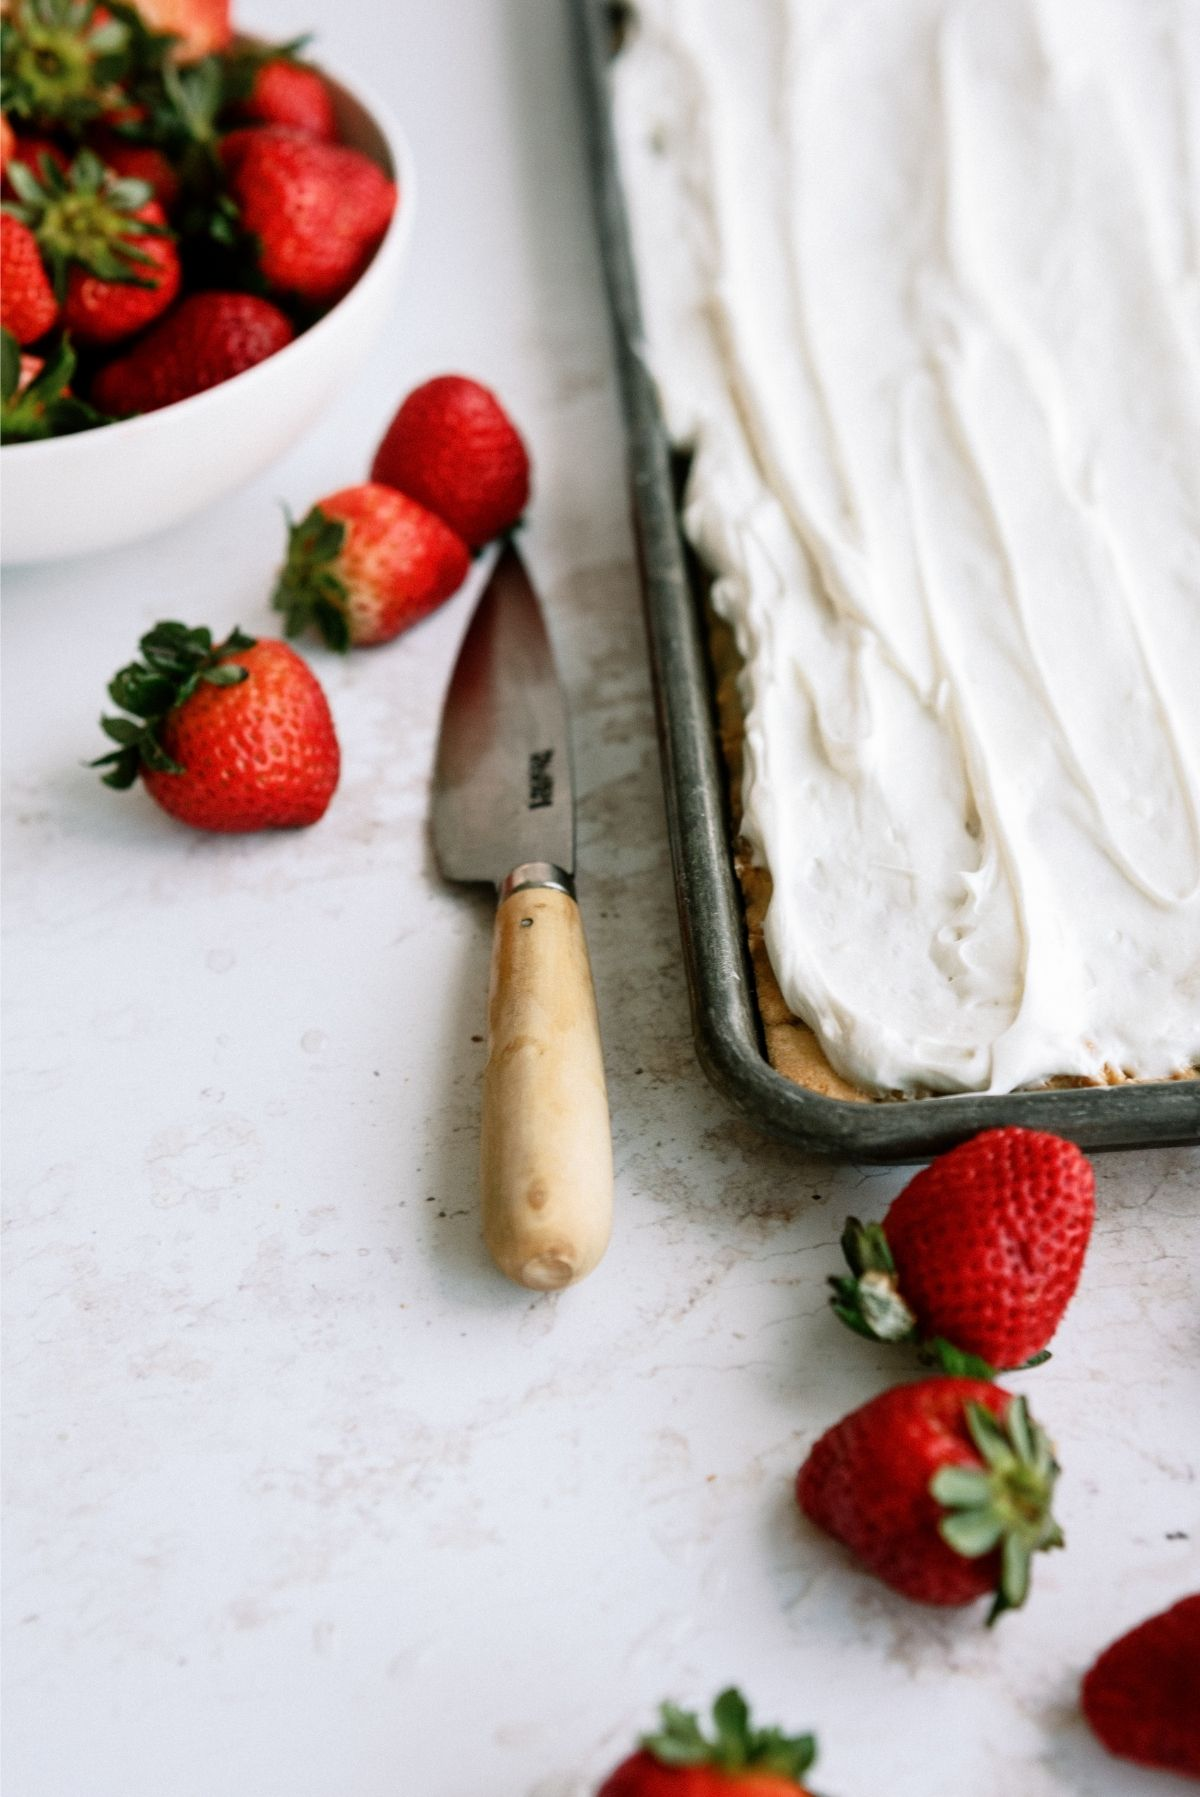 Whipped topping on Crust for Strawberry Shortcake Bars